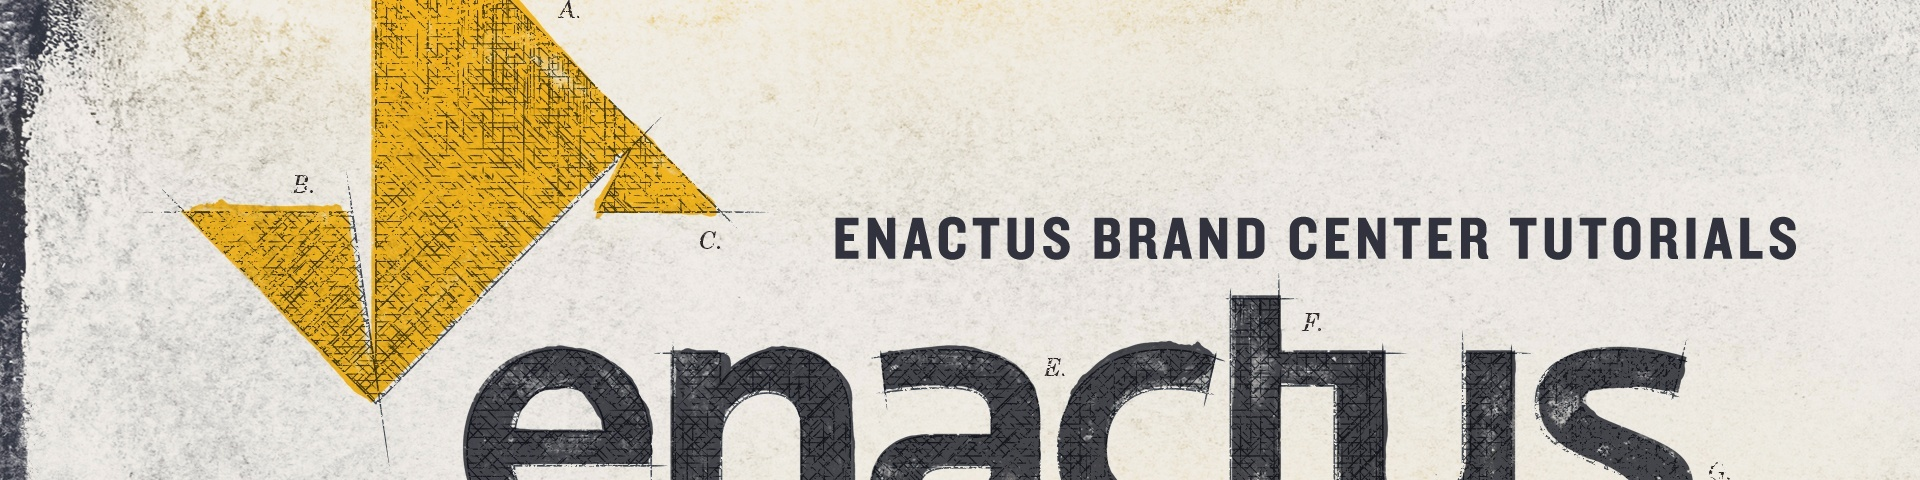 0. Enactus Brand Center Tutorials